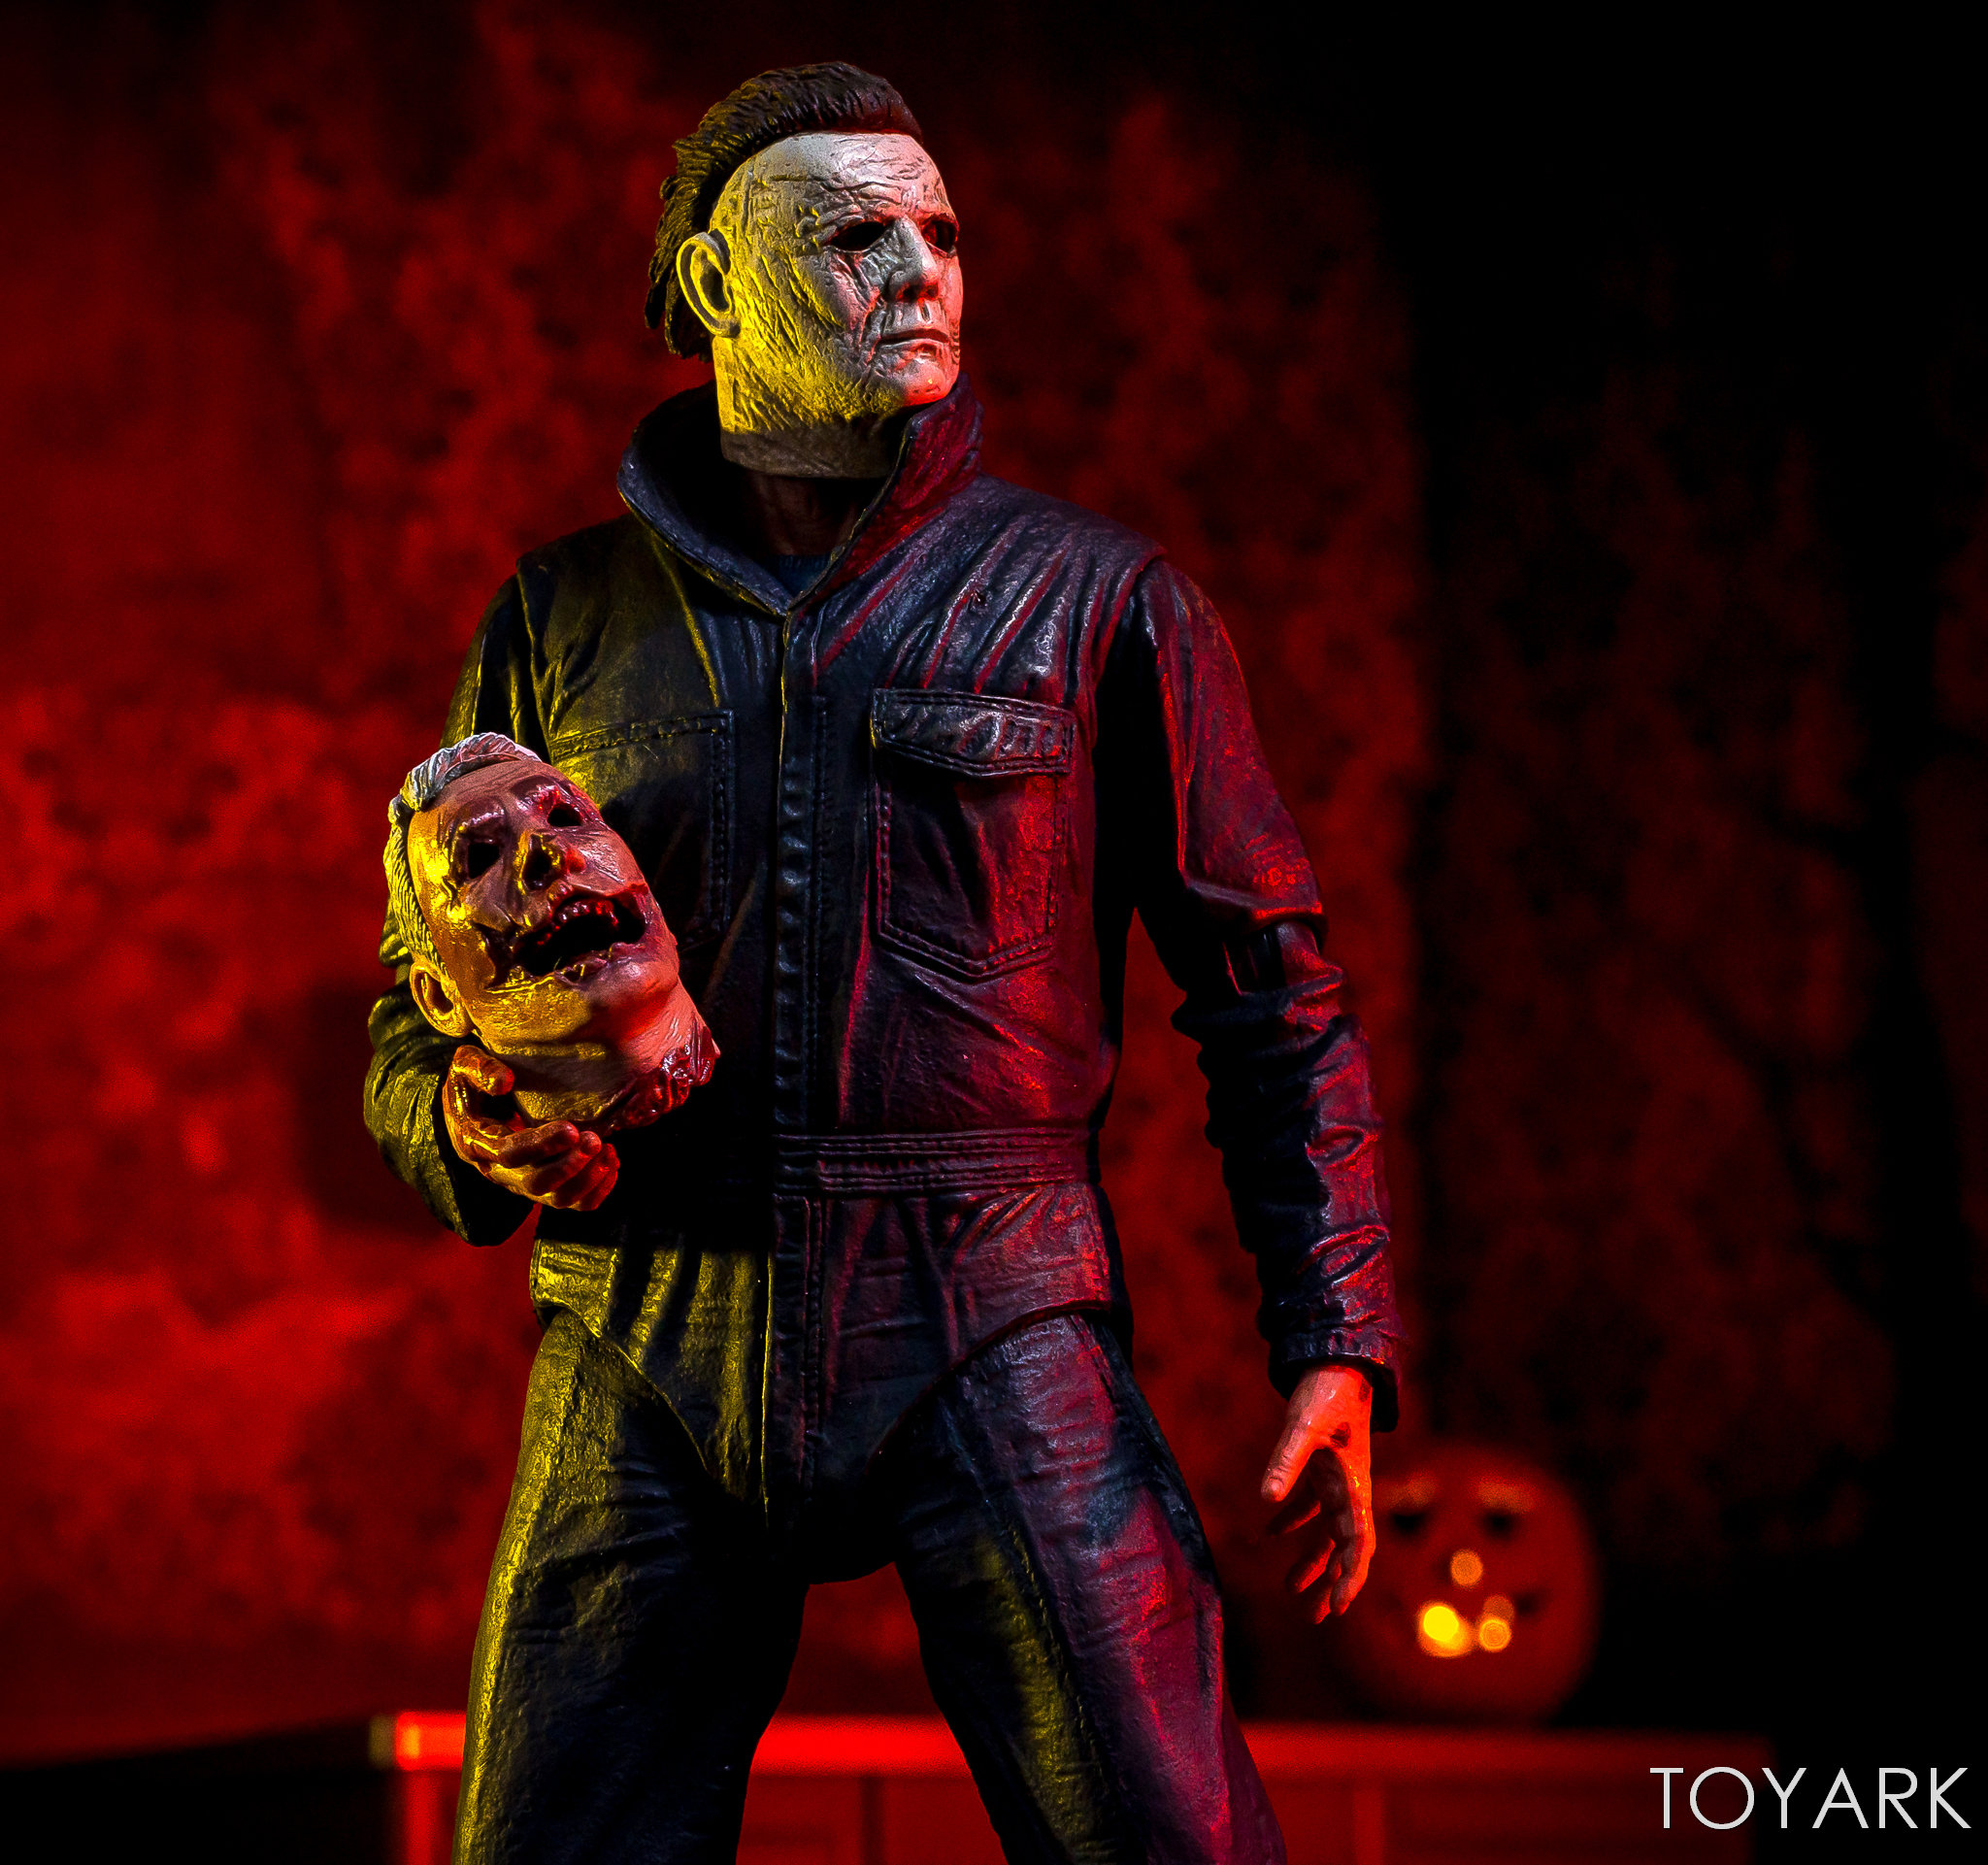 https://news.toyark.com/wp-content/uploads/sites/4/2018/11/Halloween-2018-Michael-Myers-Figure-056.jpg